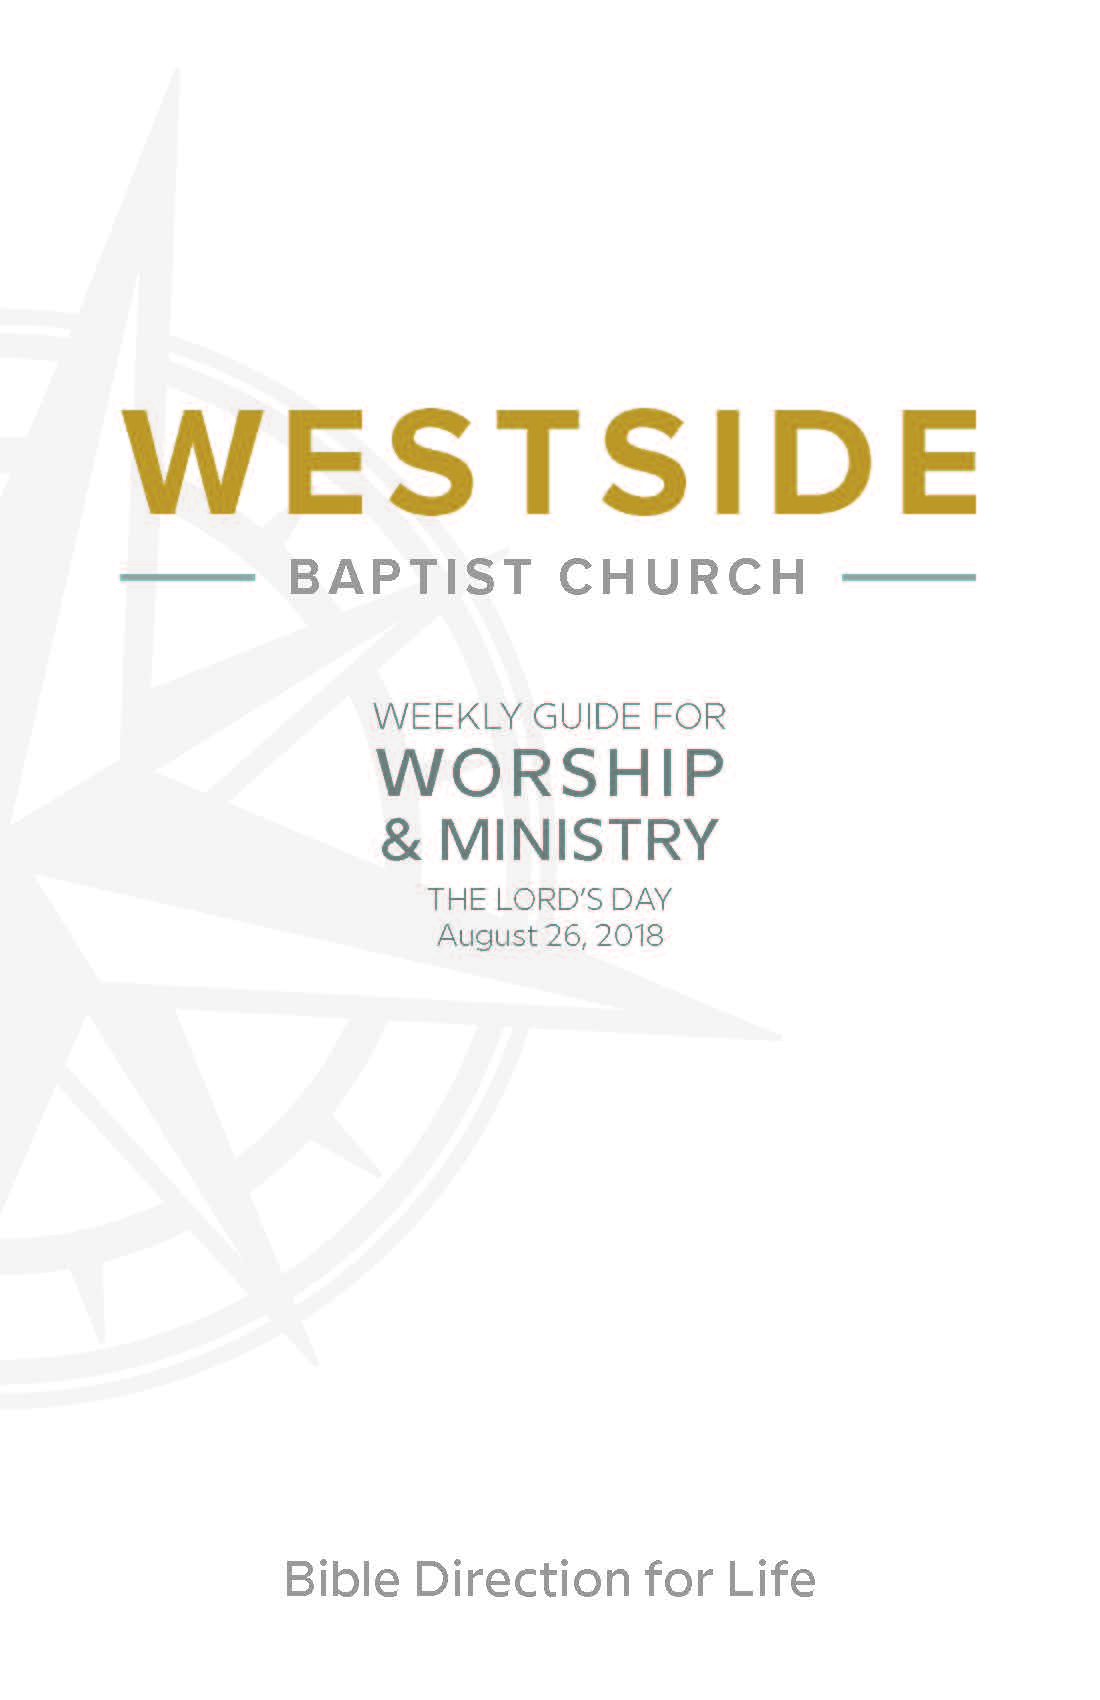 Weekly Guide for Worship and Ministry—August 26